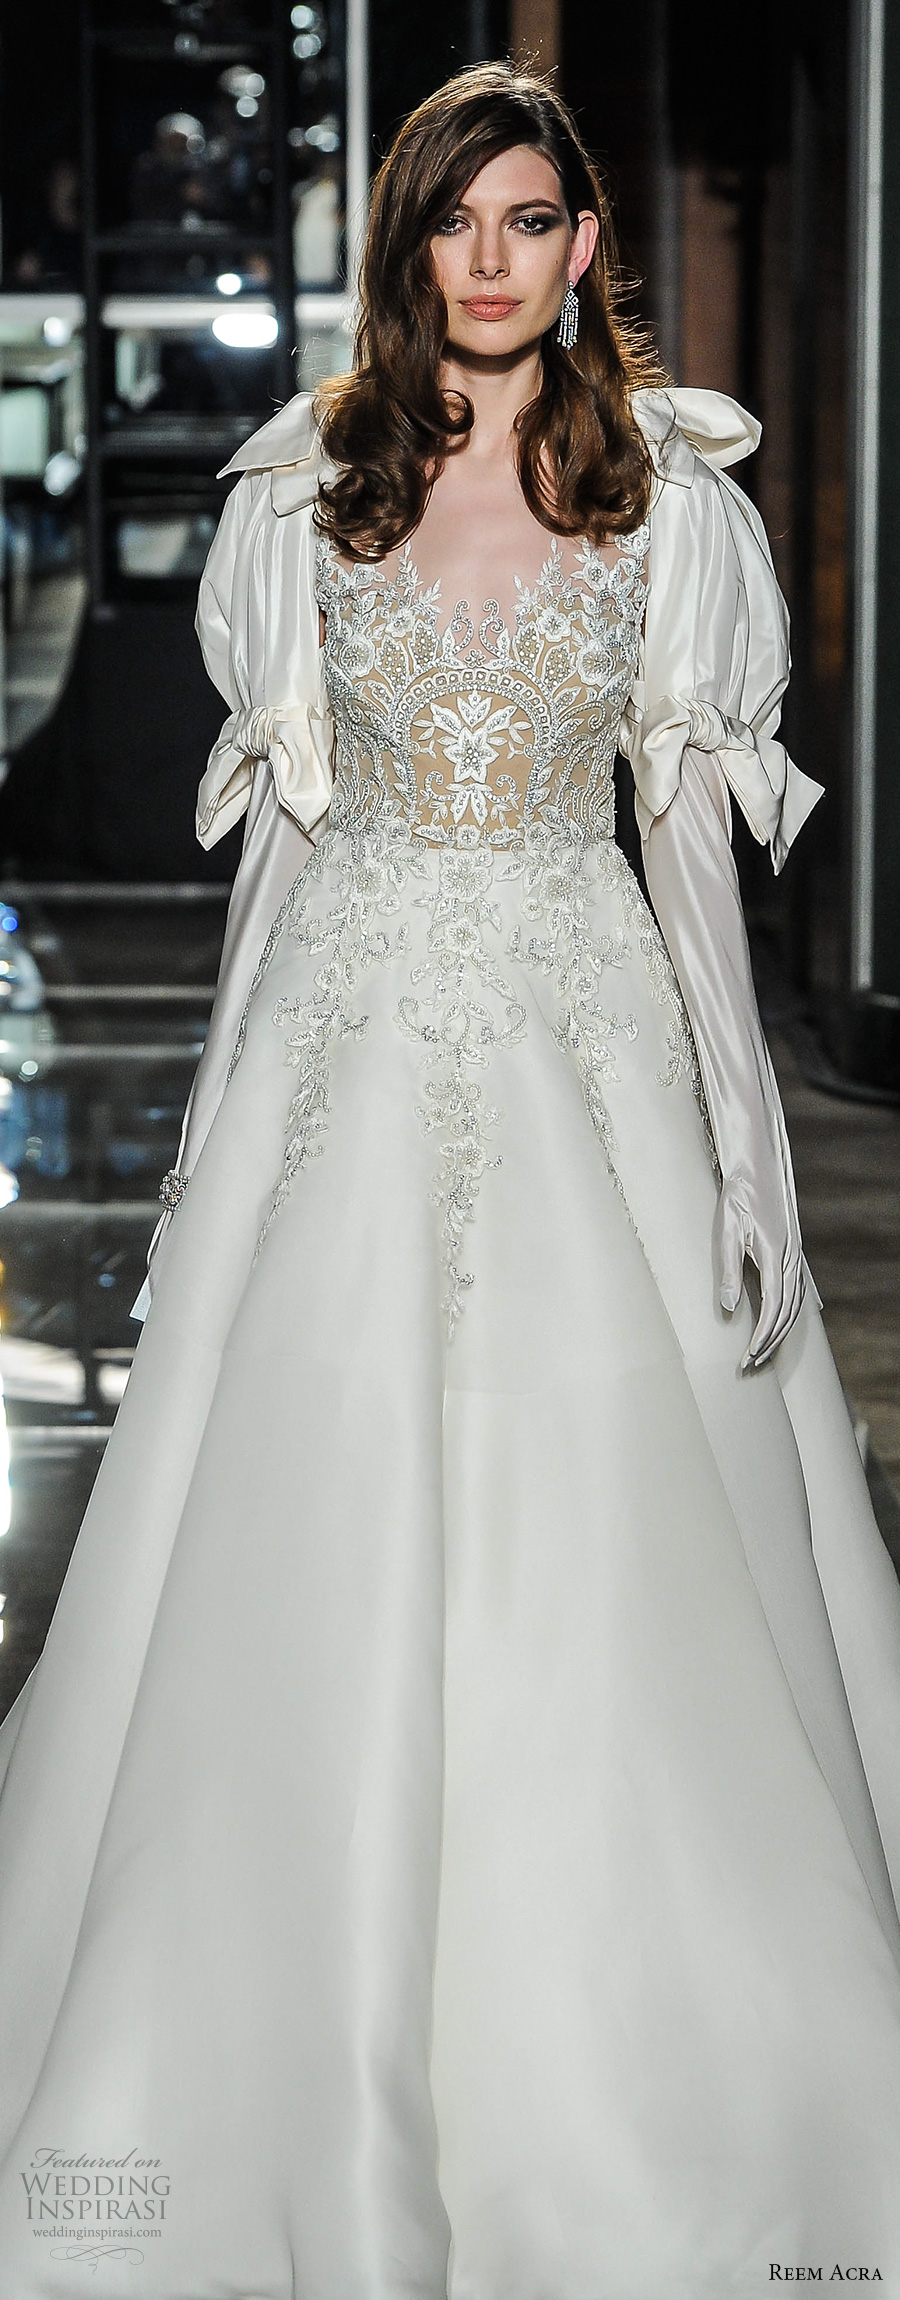 reem acra spring 2018 bridal puff long sleeves sweetheart neckline heavily embellished bodice victorian vintage a  line wedding dress long train (08) mv zv